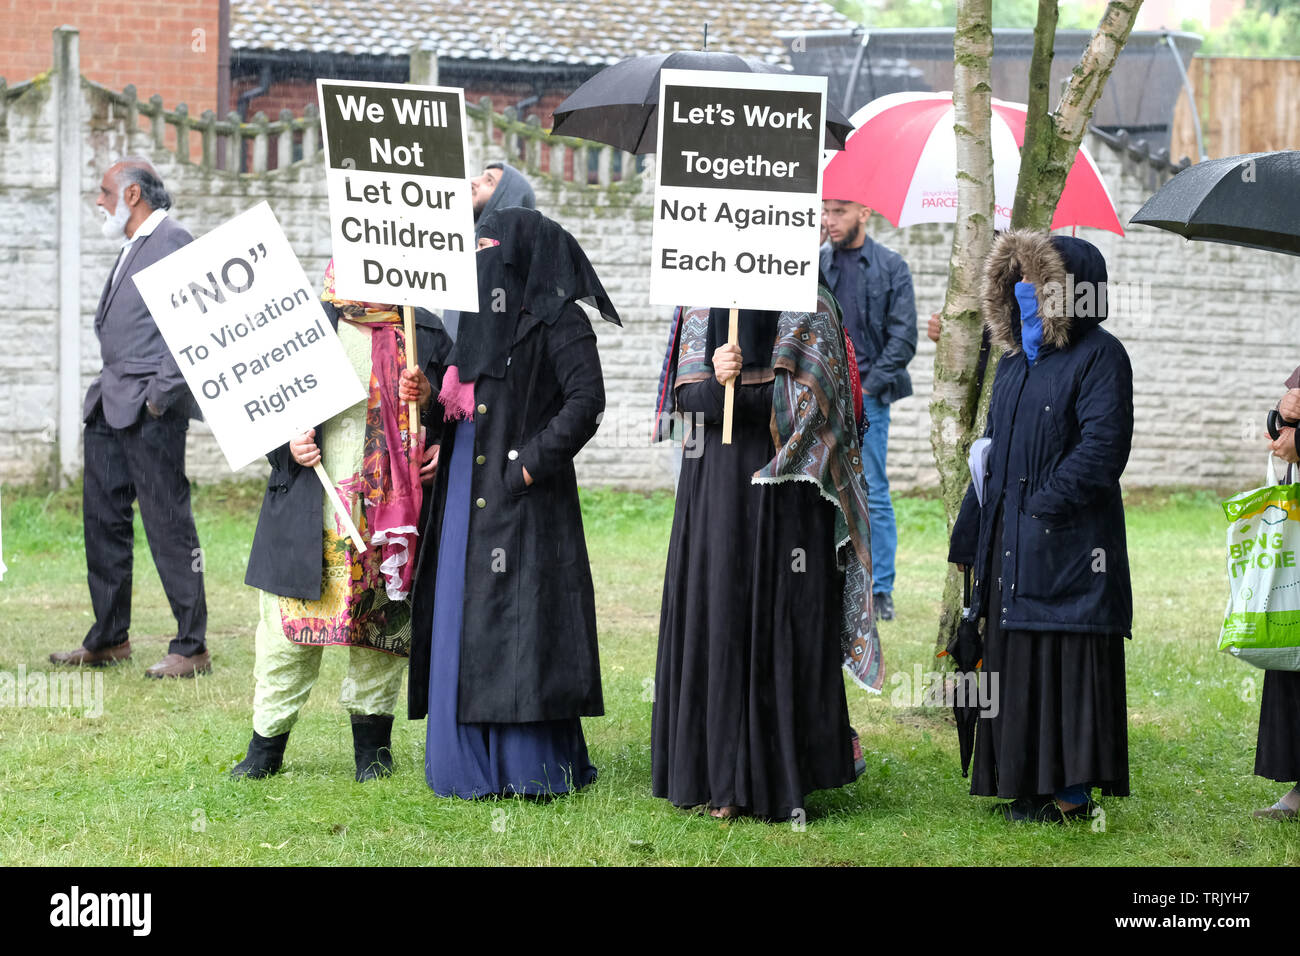 Birmingham, UK - Friday 7th June 2019 - Protesters gather near the Anderton Park Primary School in Birmingham in a protest against the No Outsiders education program - A High Court injunction is in force to prevent protesters gathering directly outside the school. Credit: Steven May/Alamy Live News - Stock Image